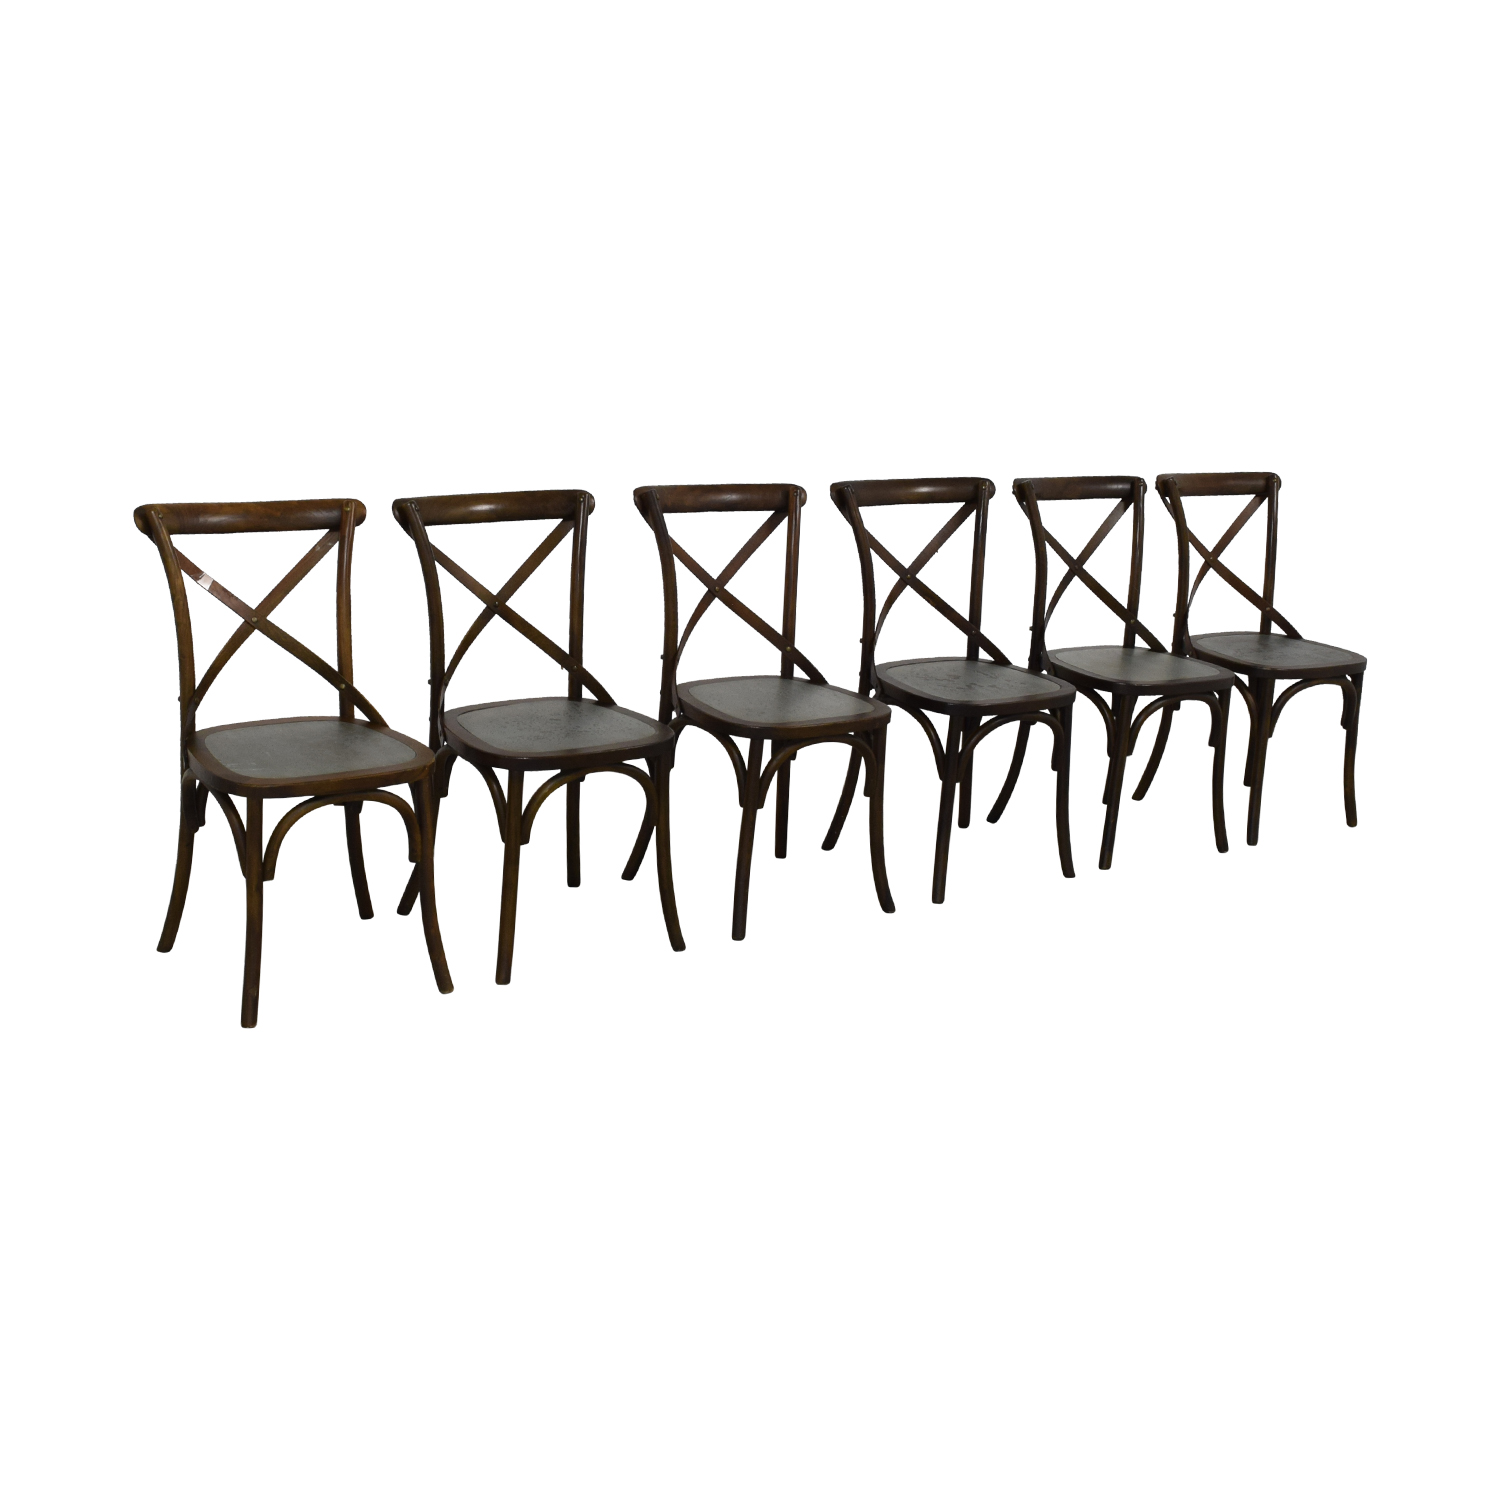 Sitcom Furniture Sitcom Furniture Wood and Metal Dining Chairs price